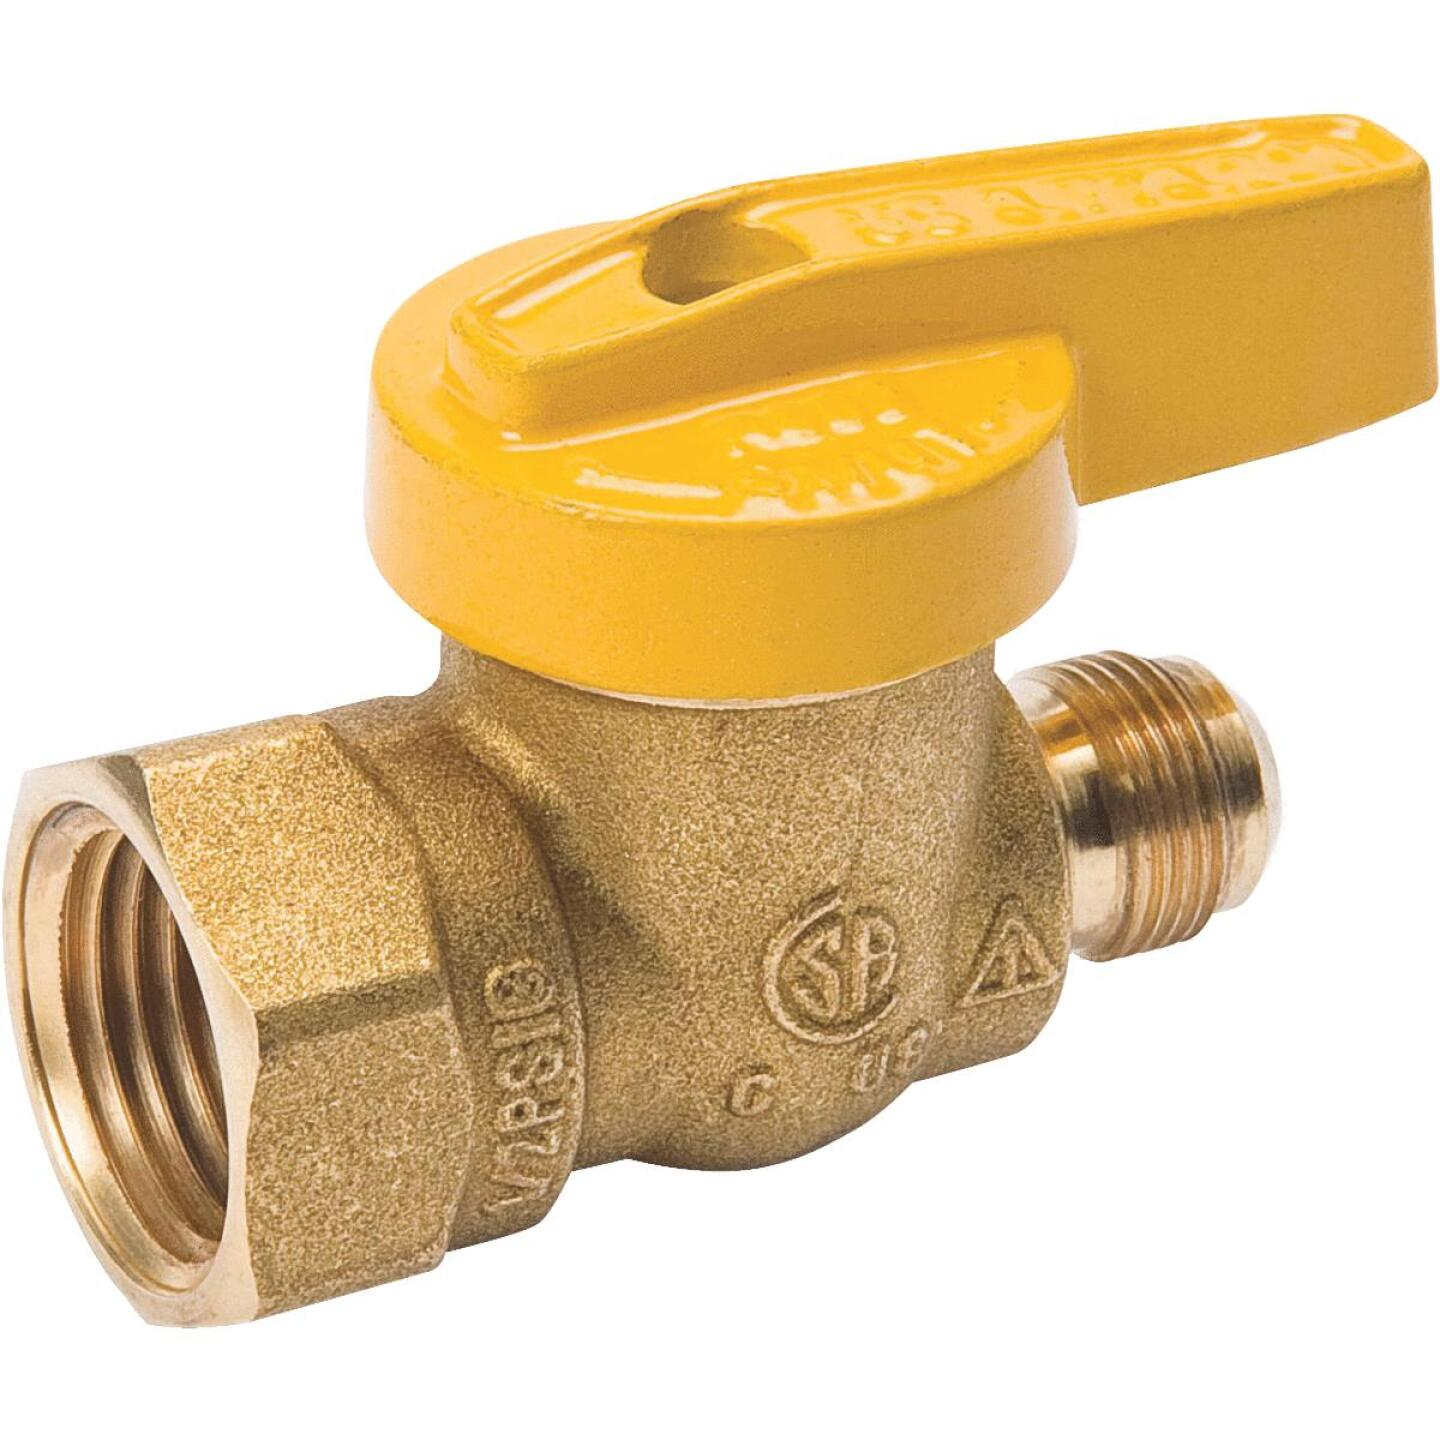 ProLine 9/16 In. x 1/2 In. x 9/16-24 Fine Flare Forged Brass Gas Valve Image 1